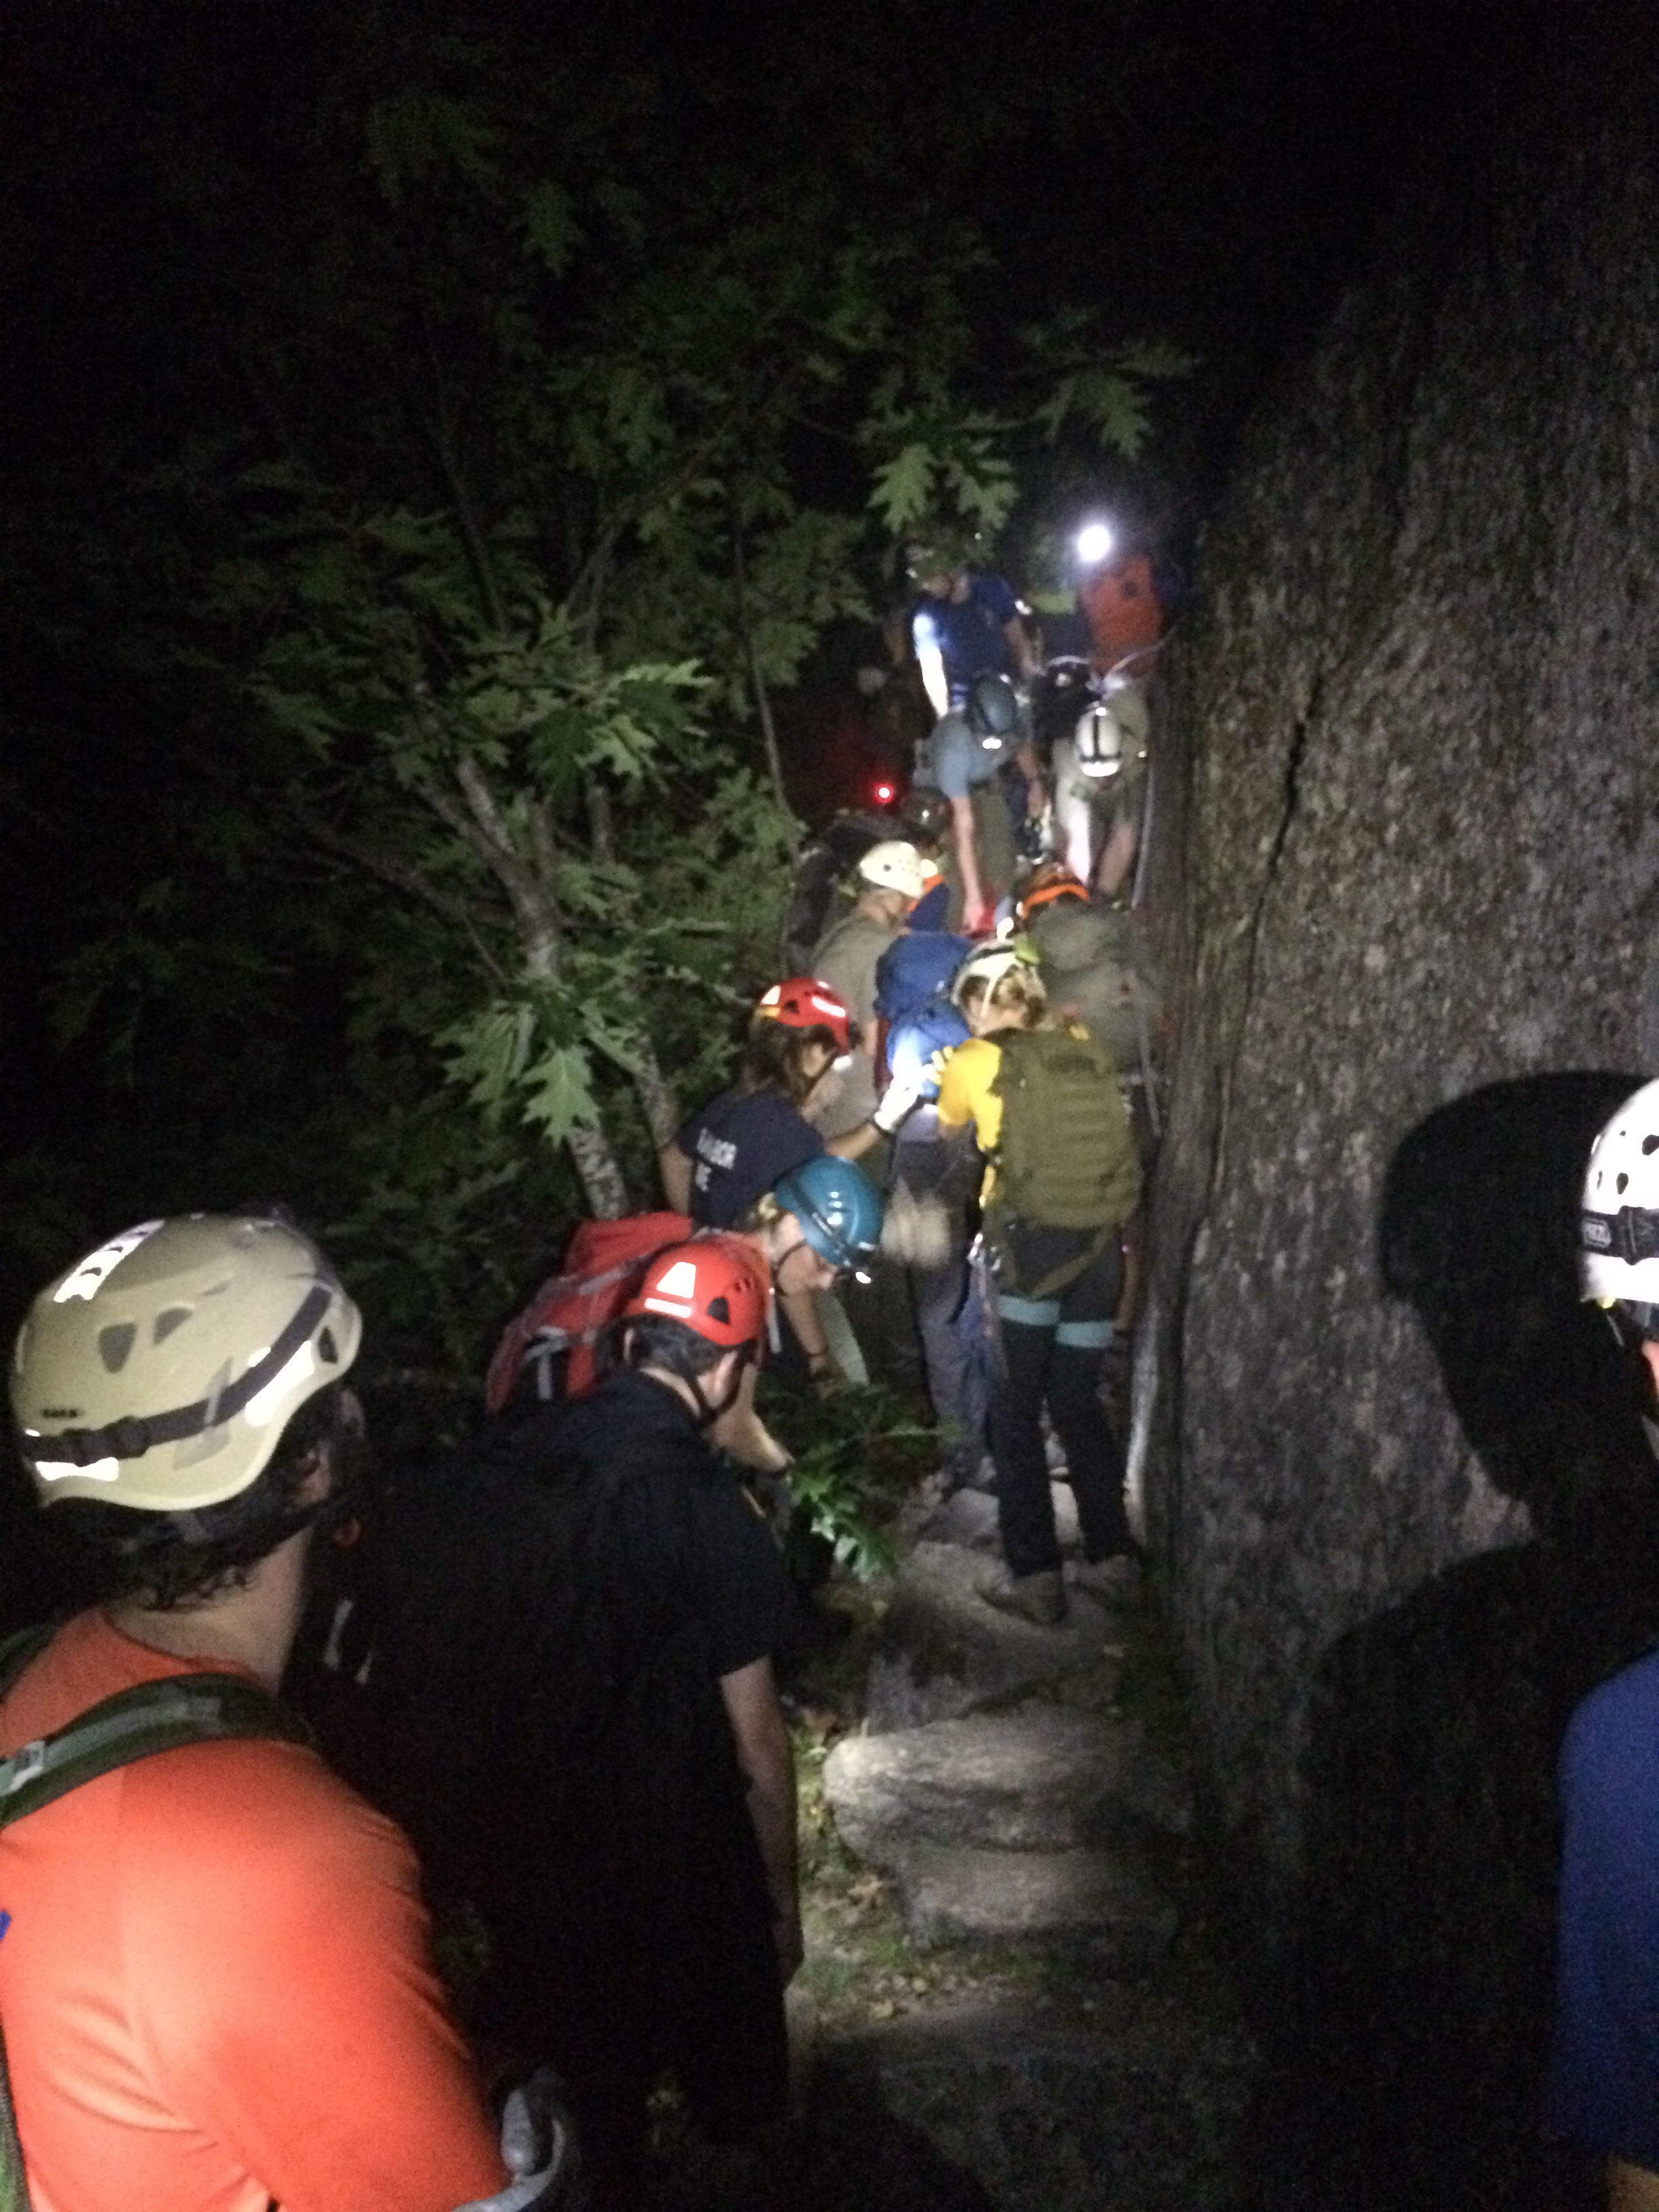 Rescuers on narrow trail along steep rock face